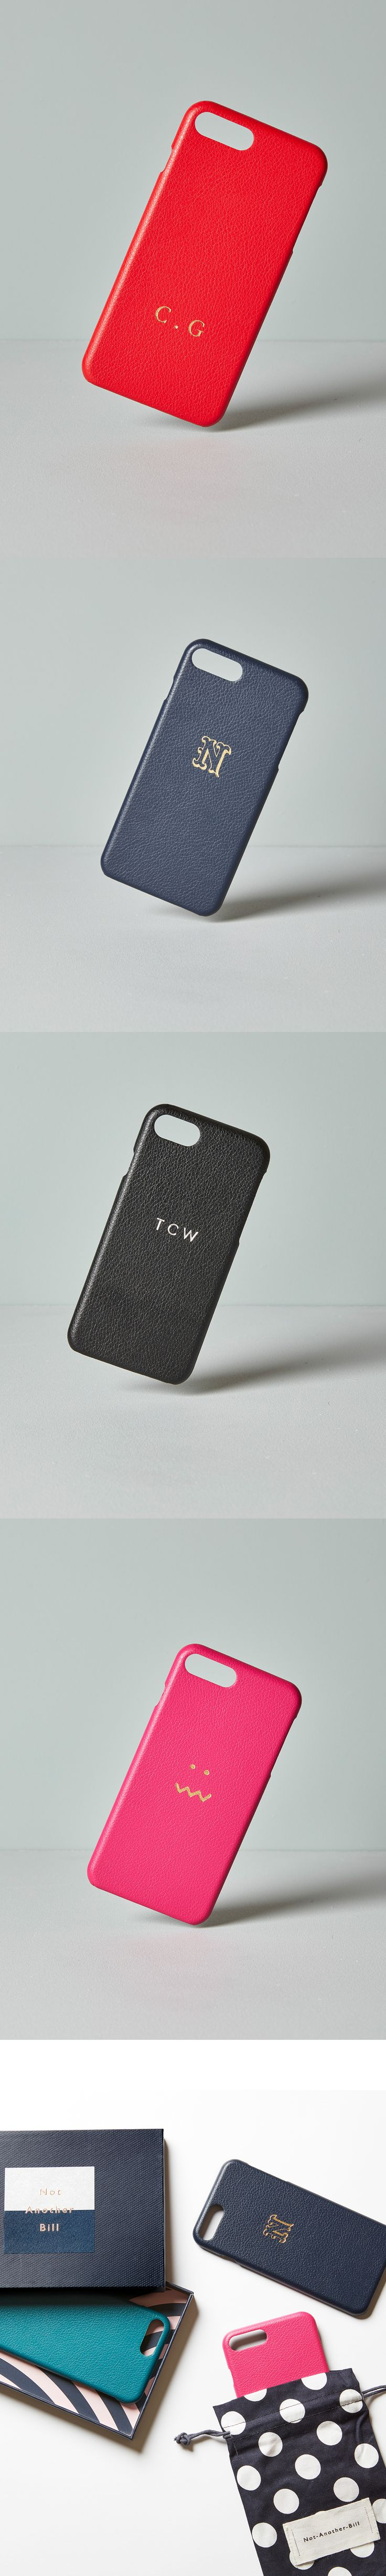 Bespoke & Personalised leather iPhone cases.